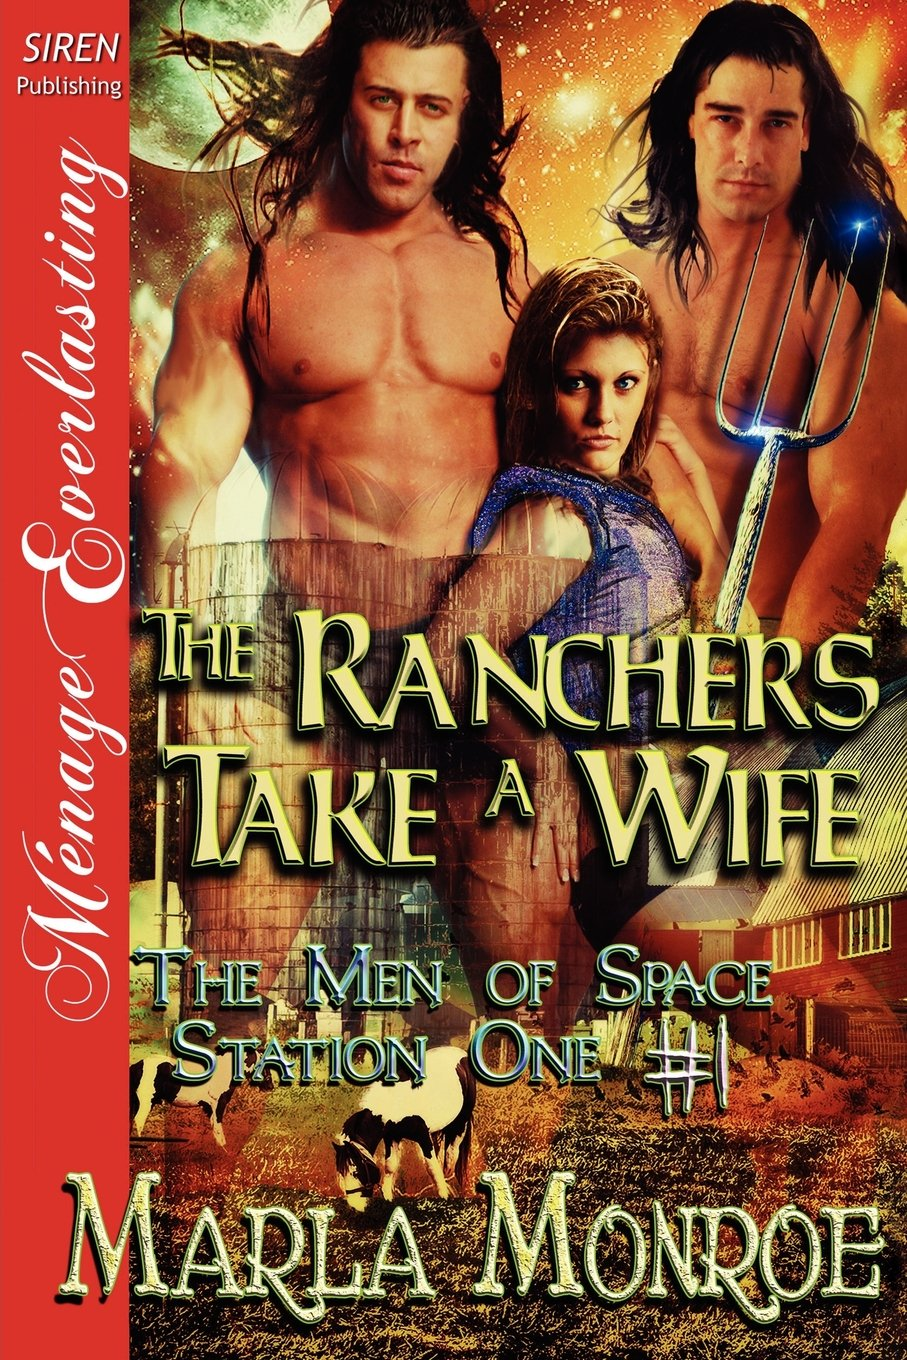 Download The Ranchers Take a Wife [The Men of Space Station One #1] (Siren Publishing Menage Everlasting) PDF